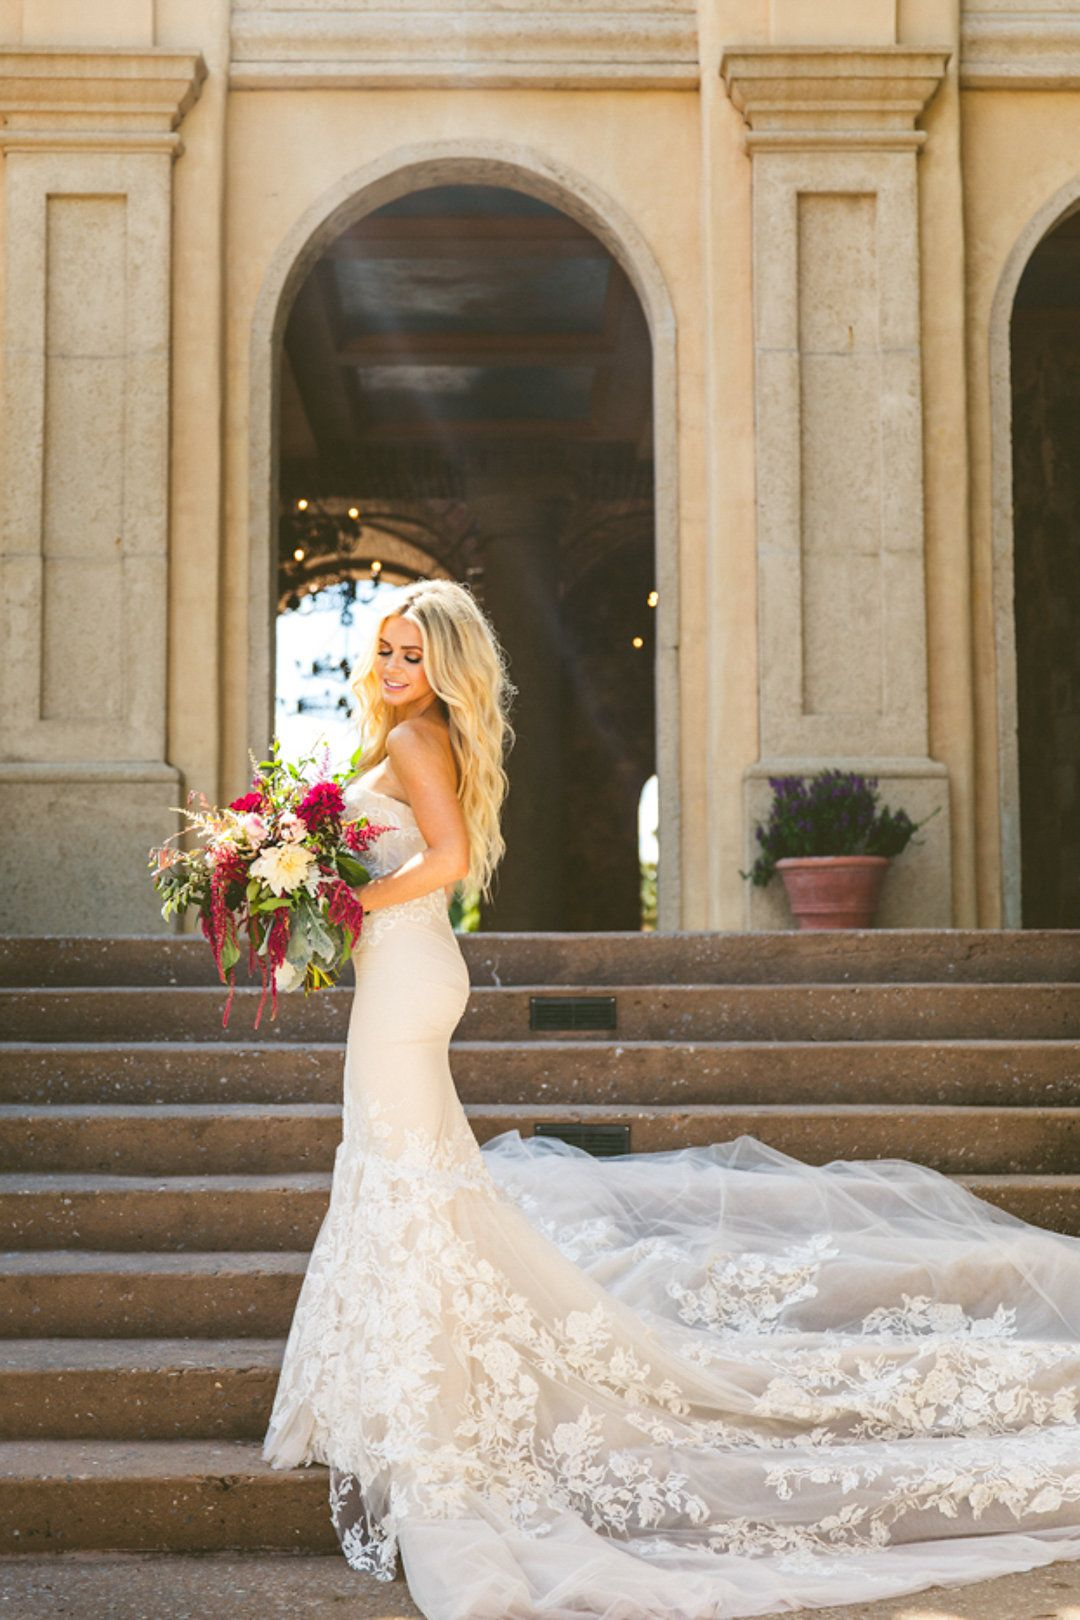 Ever wonder what a bohemian carrie bradshaw wedding might look like